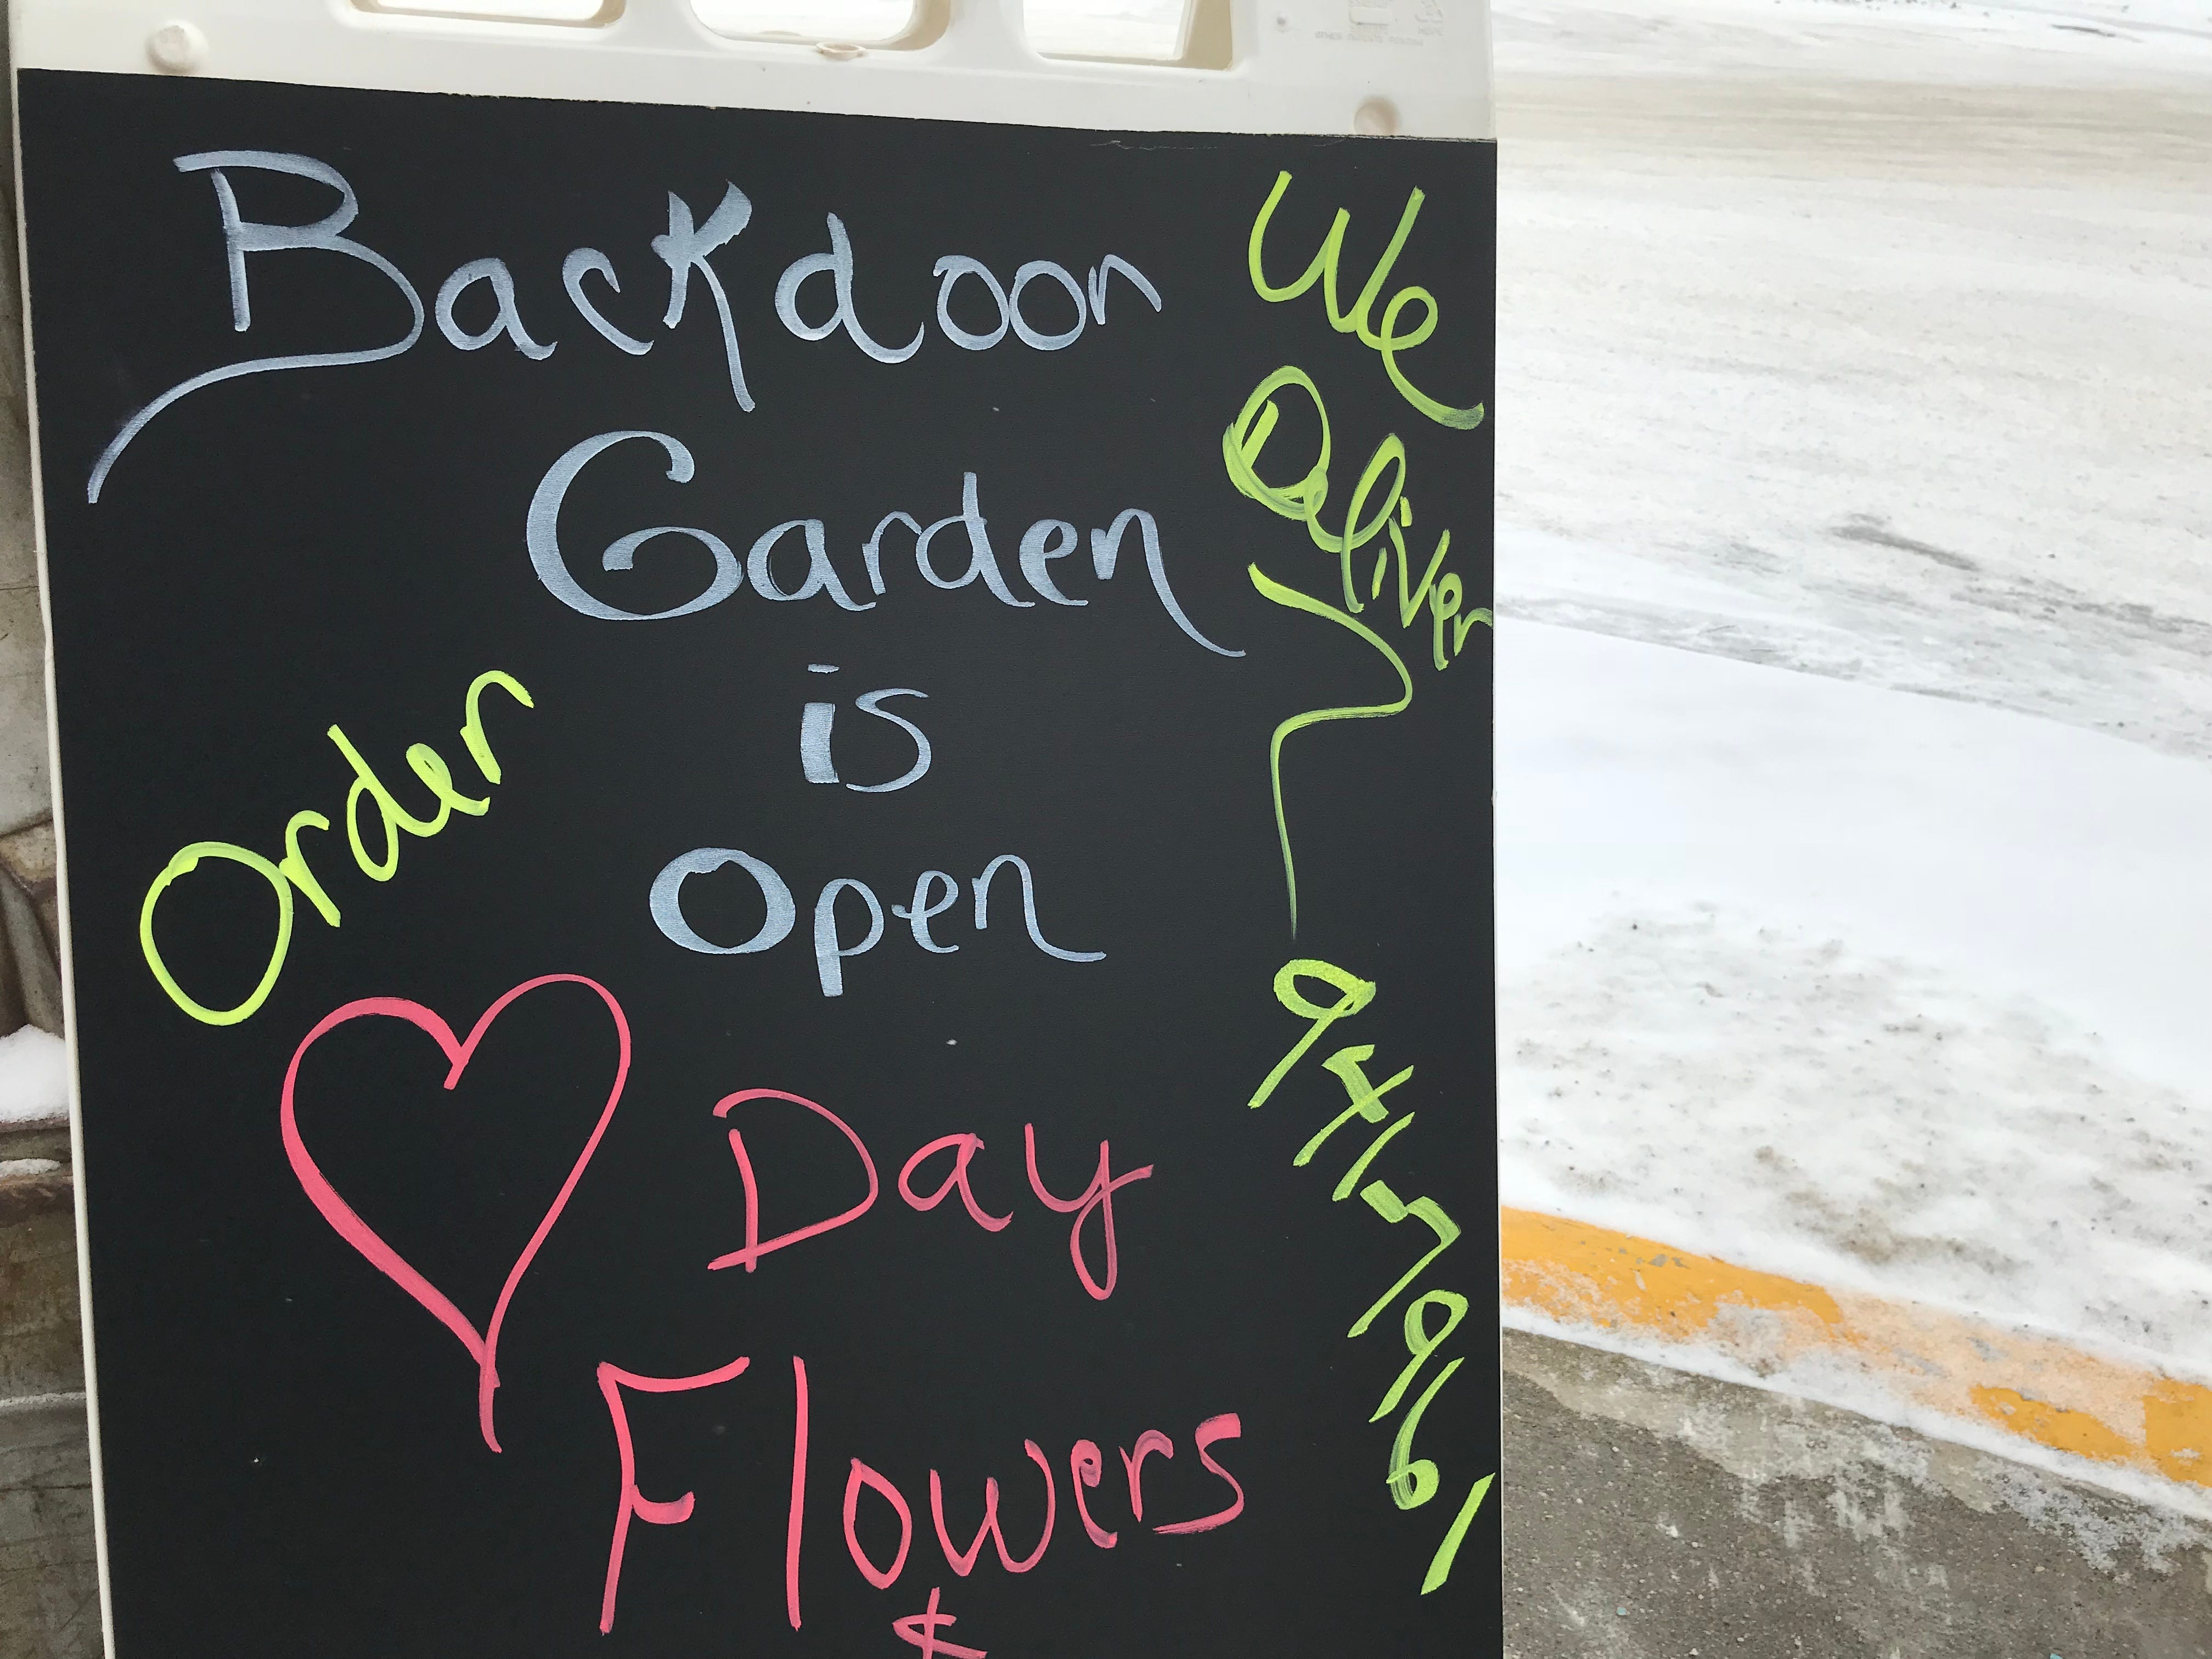 Backdoor Garden opened its downtown Hartford location this week, adding to the community's economic revitalization.